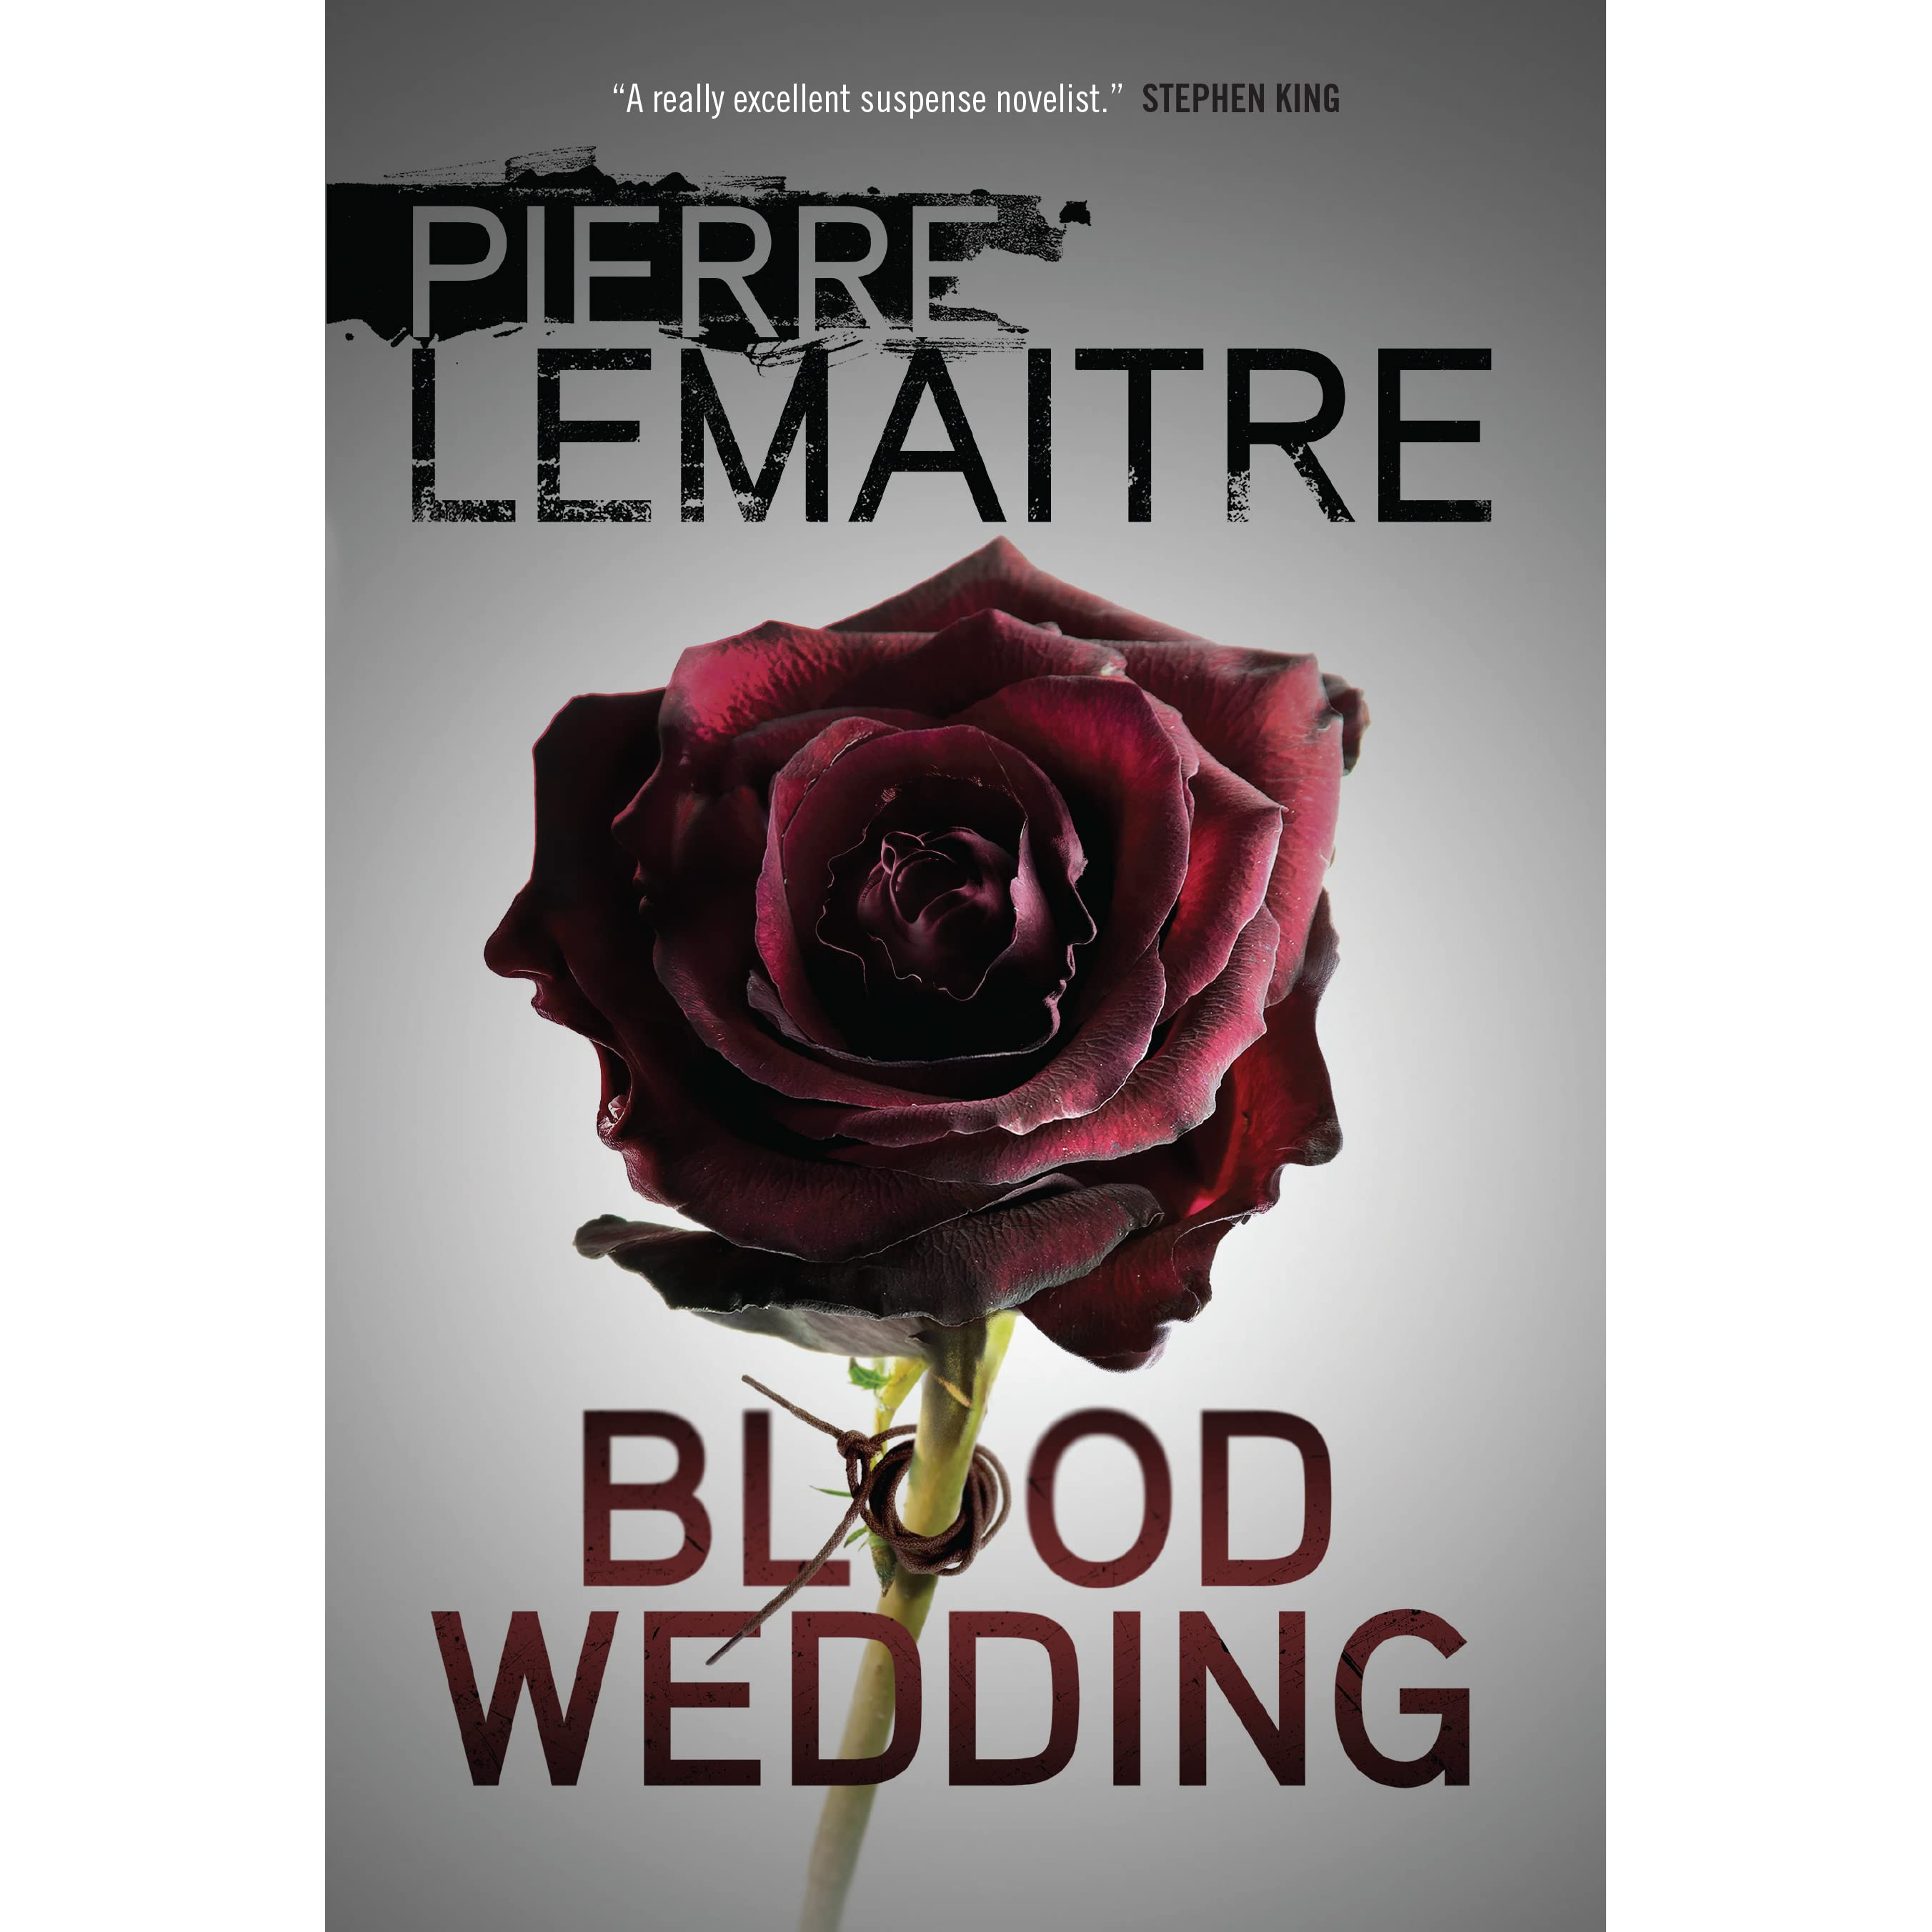 Blood Wedding Quotes: Blood Wedding By Pierre Lemaitre